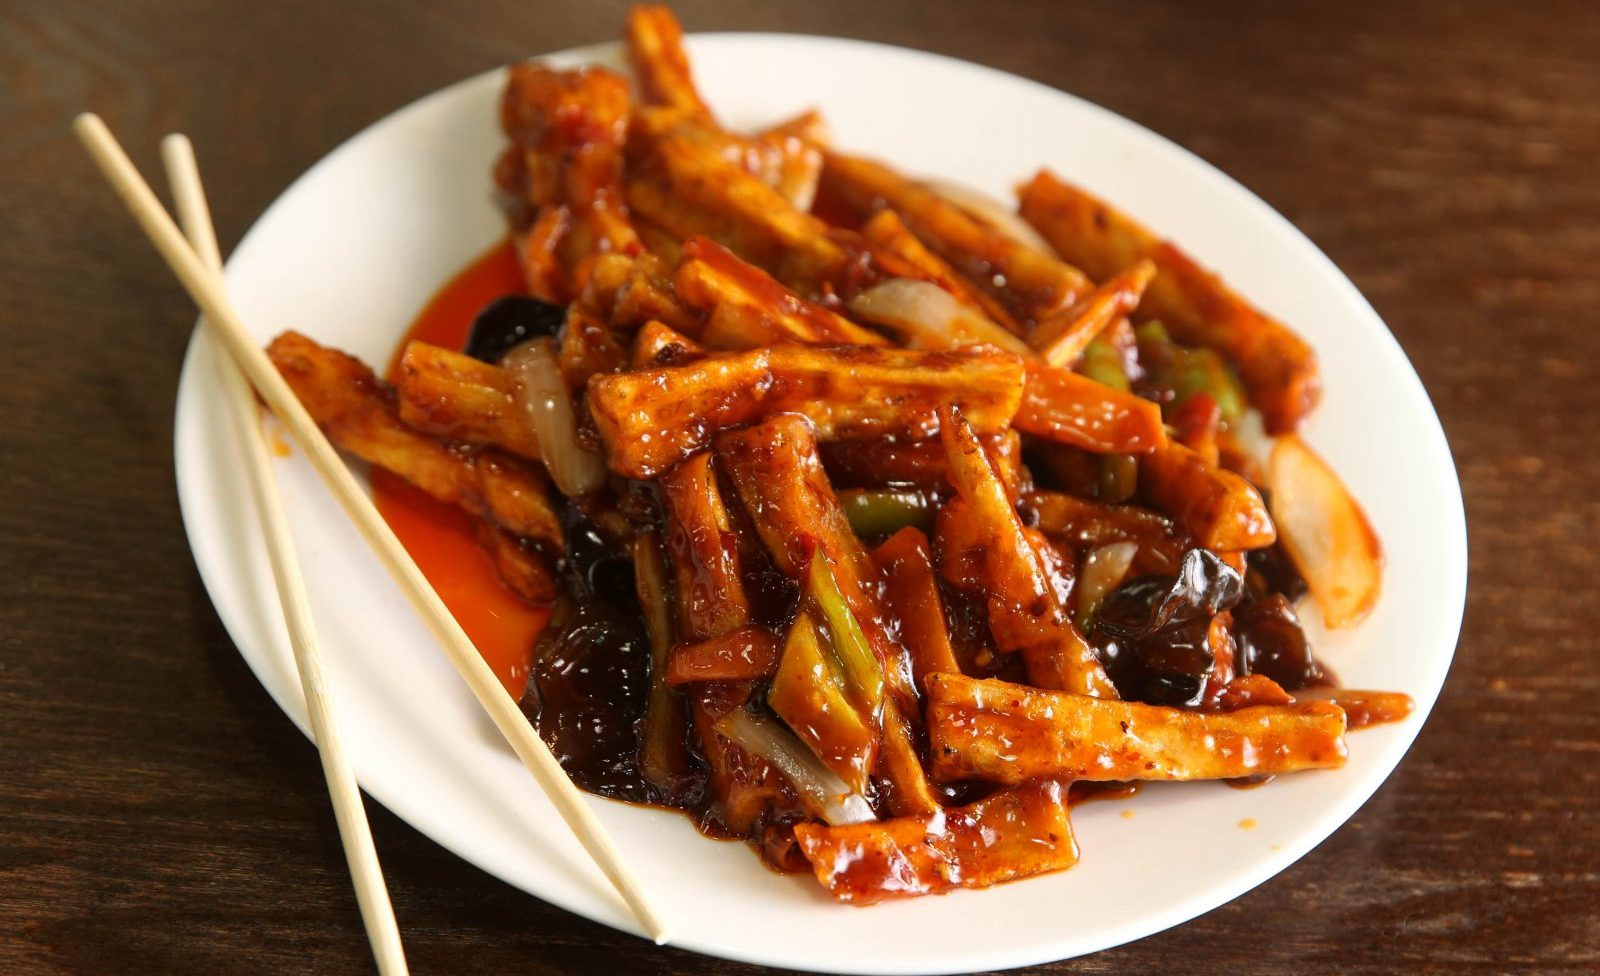 The eggplant with garlic sauce is made with onion, carrots, black mushrooms and green peppers at 1280 China Taste. (Sharon Cantillon/Buffalo News)